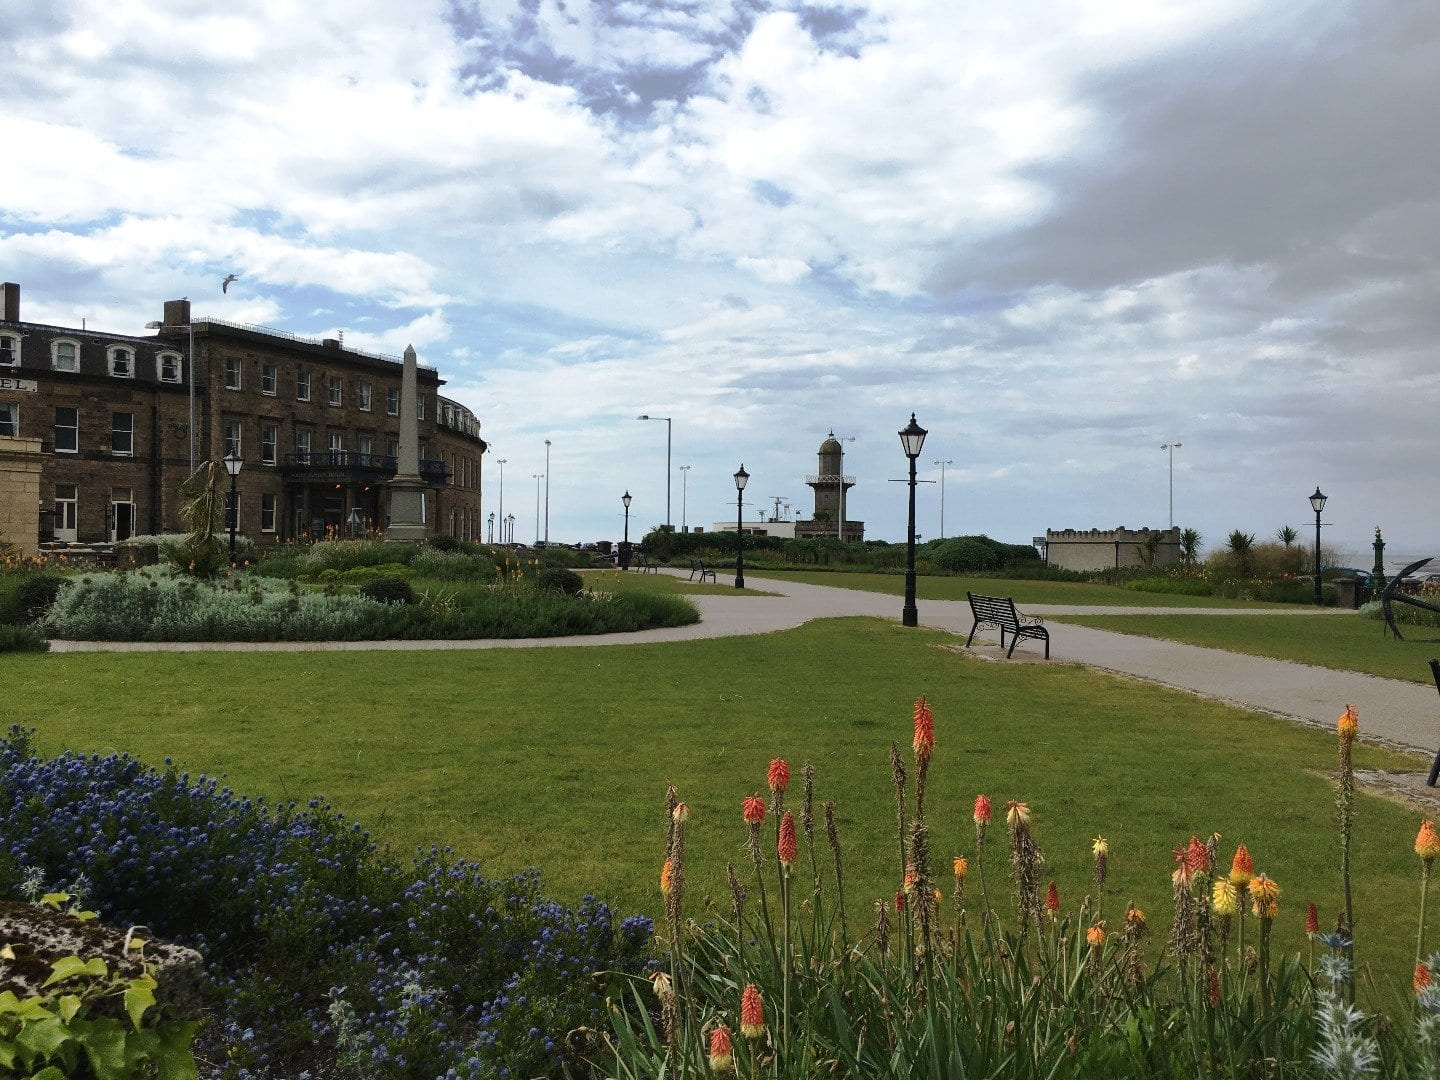 North Euston Hotel and gardens, history of Fleetwood